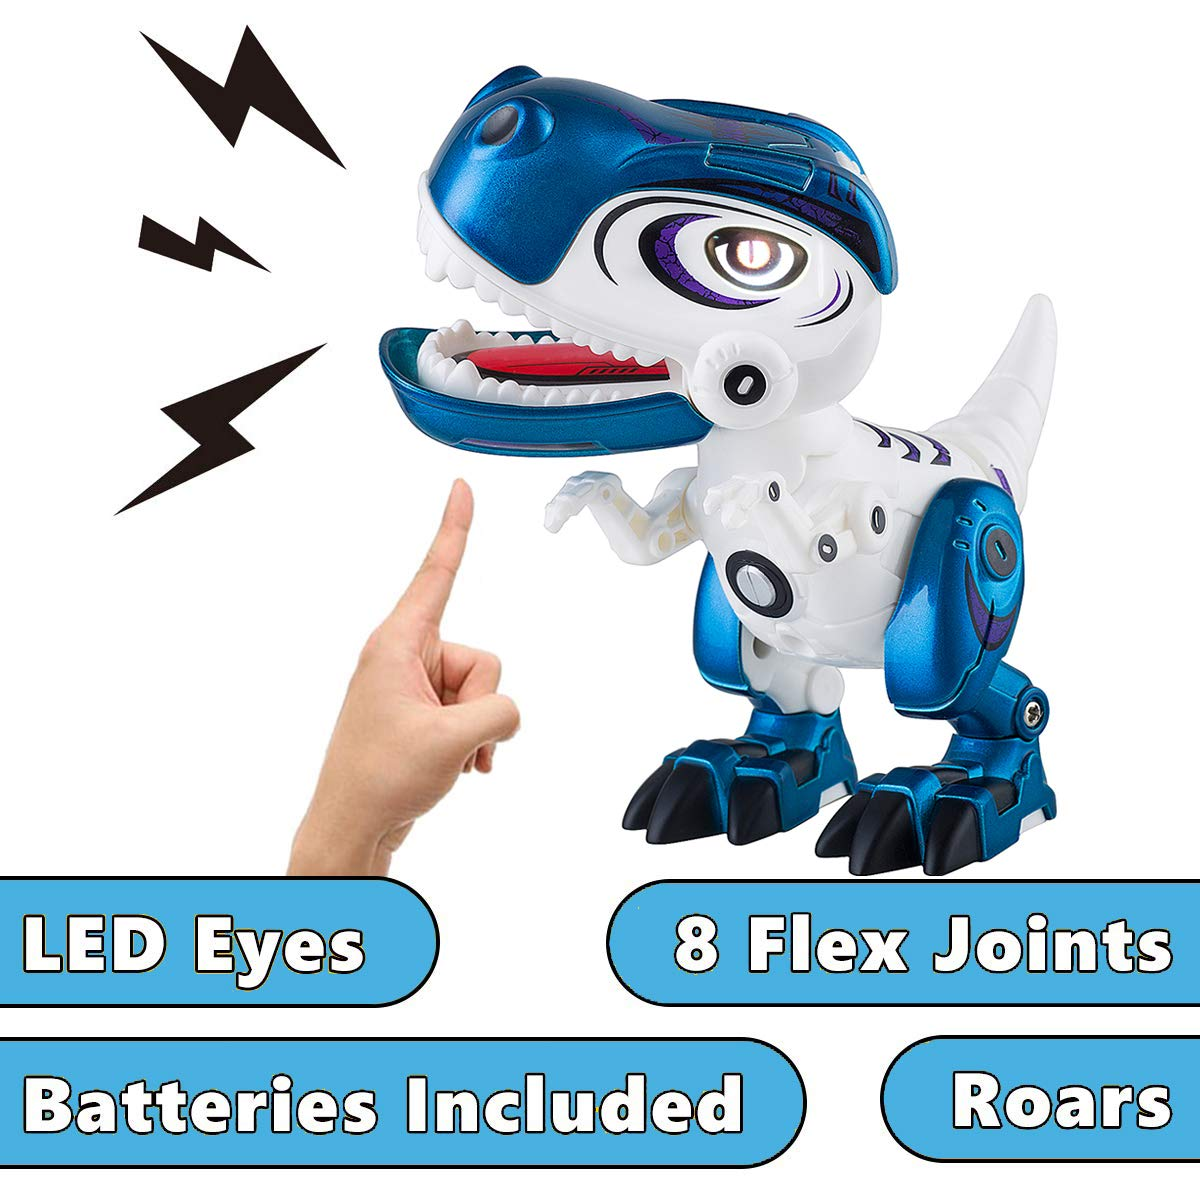 Dolibi Dinosaur Toys for 3 Year Olds Up,Mini Dino Toys Dinosaur Robot,Flexible Body,Sound & Lights (Blue) by Dolibi (Image #2)